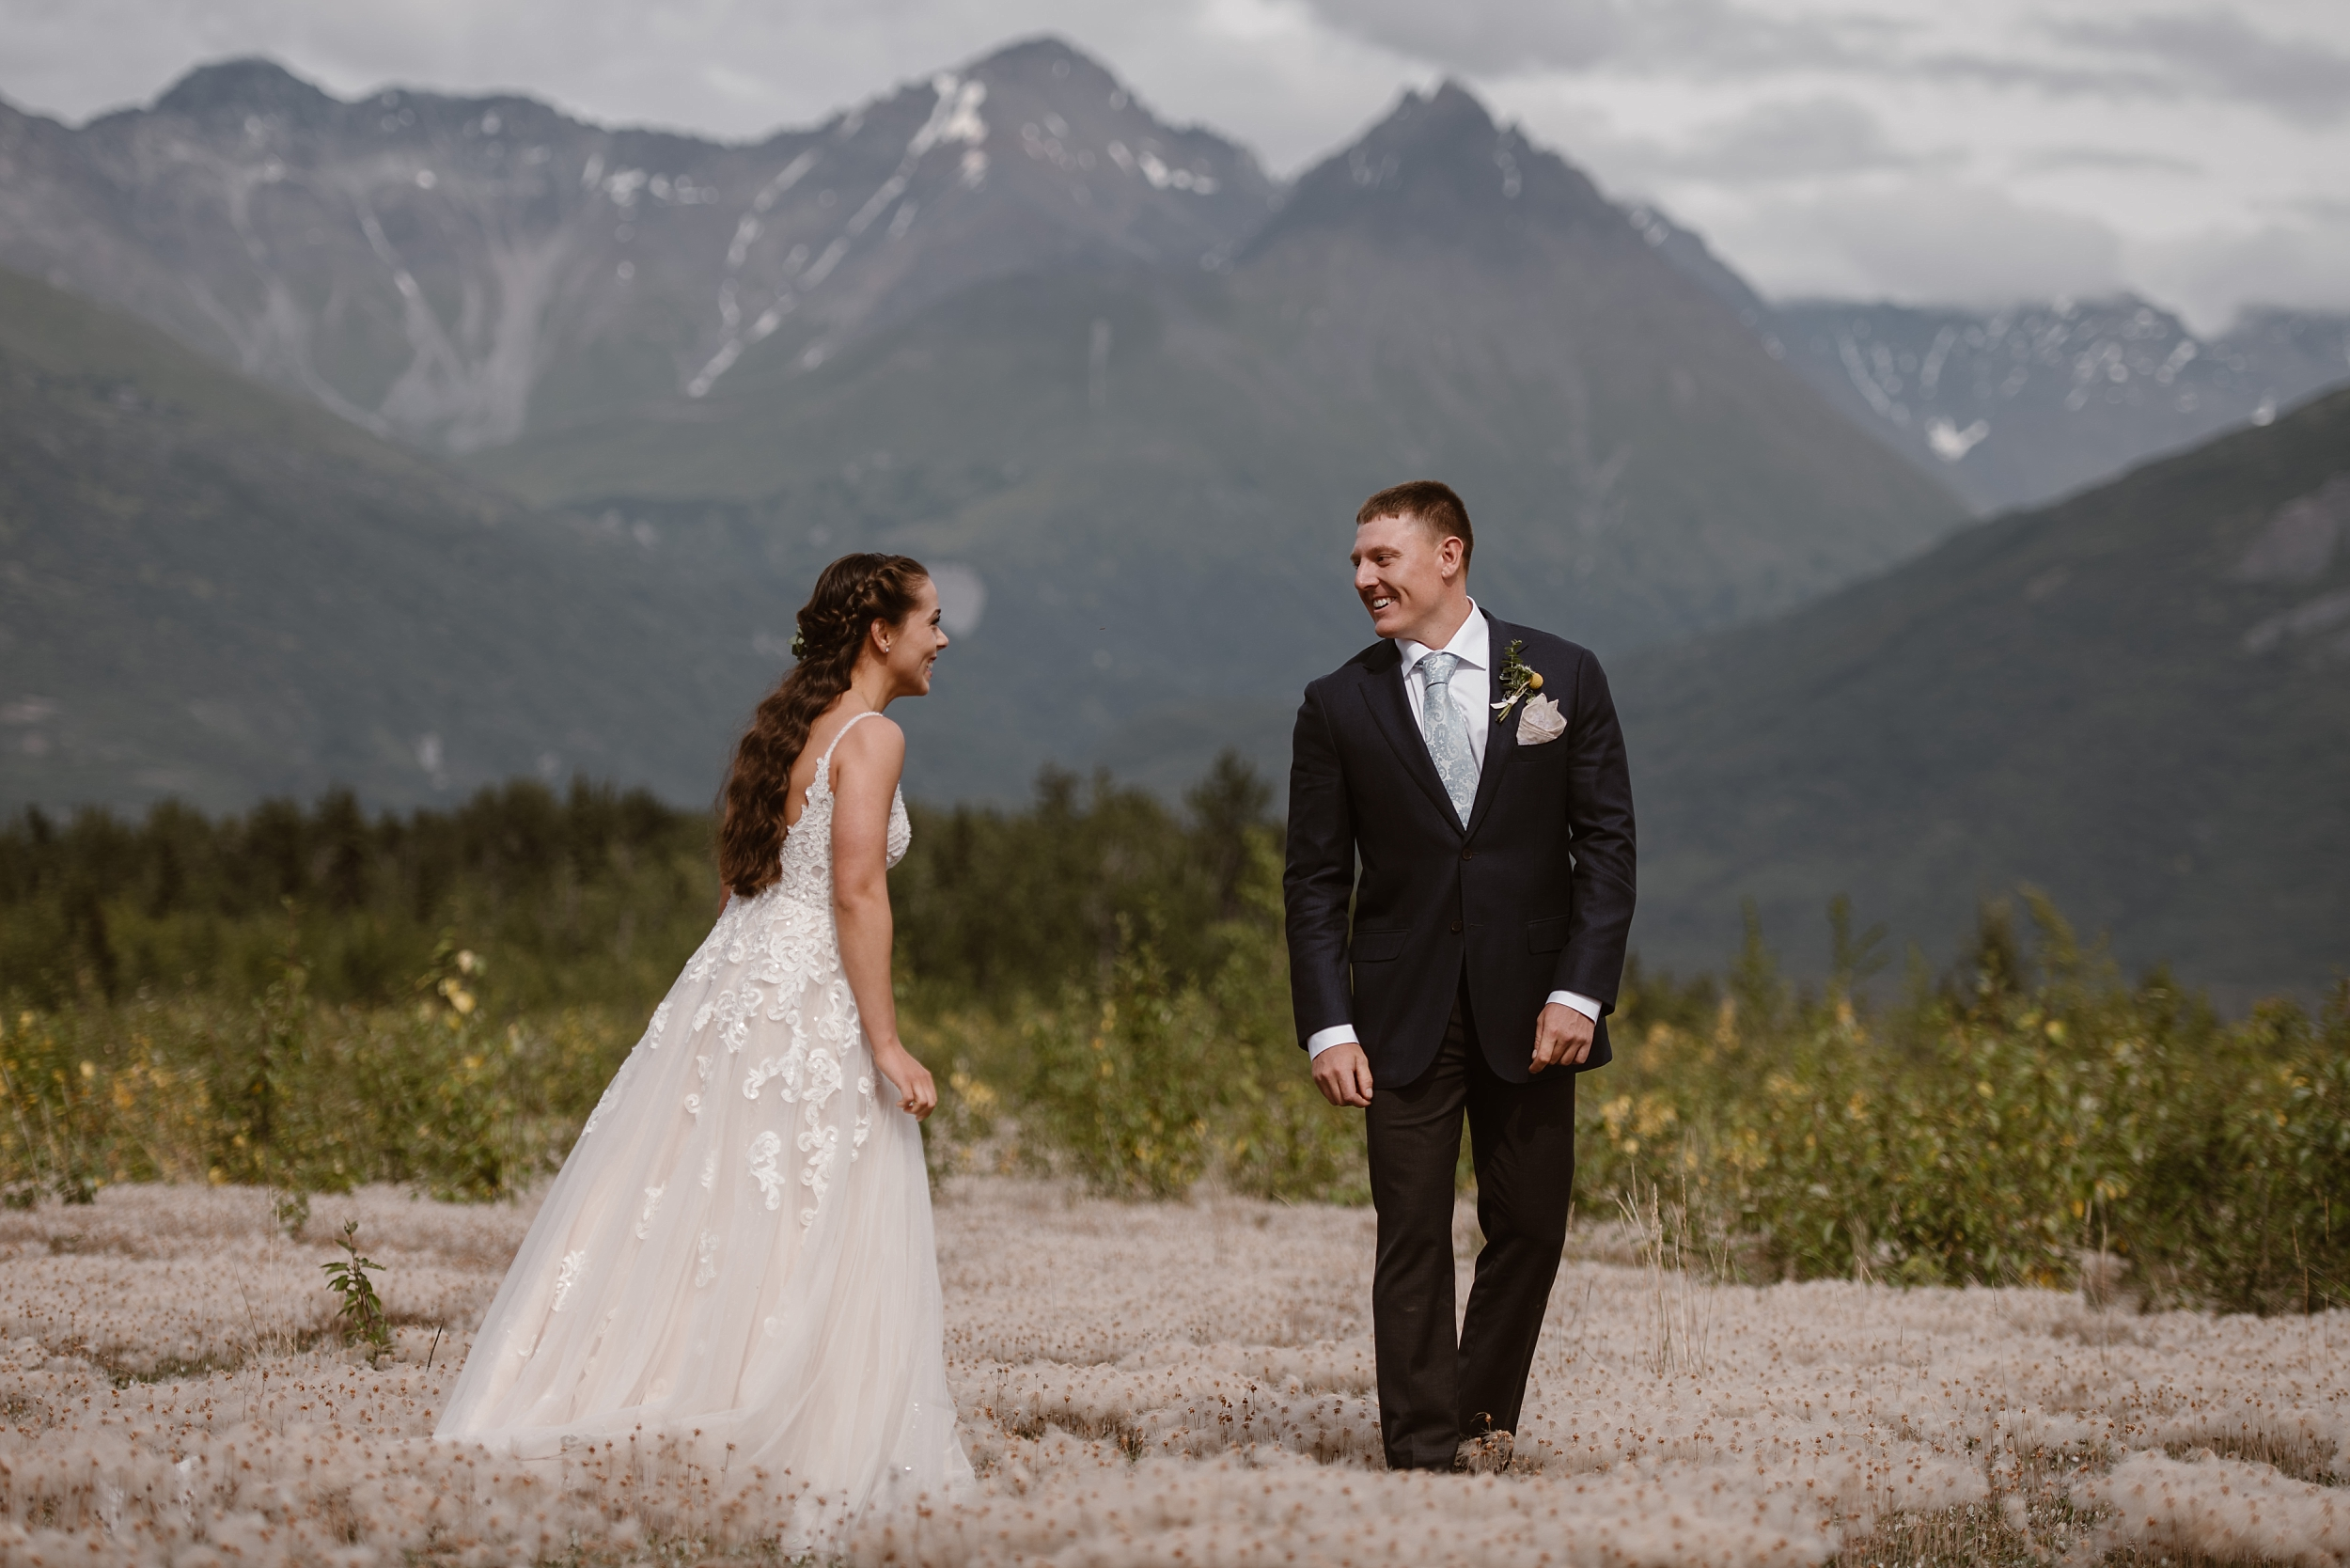 Jordyn and Connor have their first look in this elopement photo. The two of them stand in a field of beautiful flowers on the Knik River with mountains in the background. This photo was captured by Alaska elopement photographer Adventure Instead.